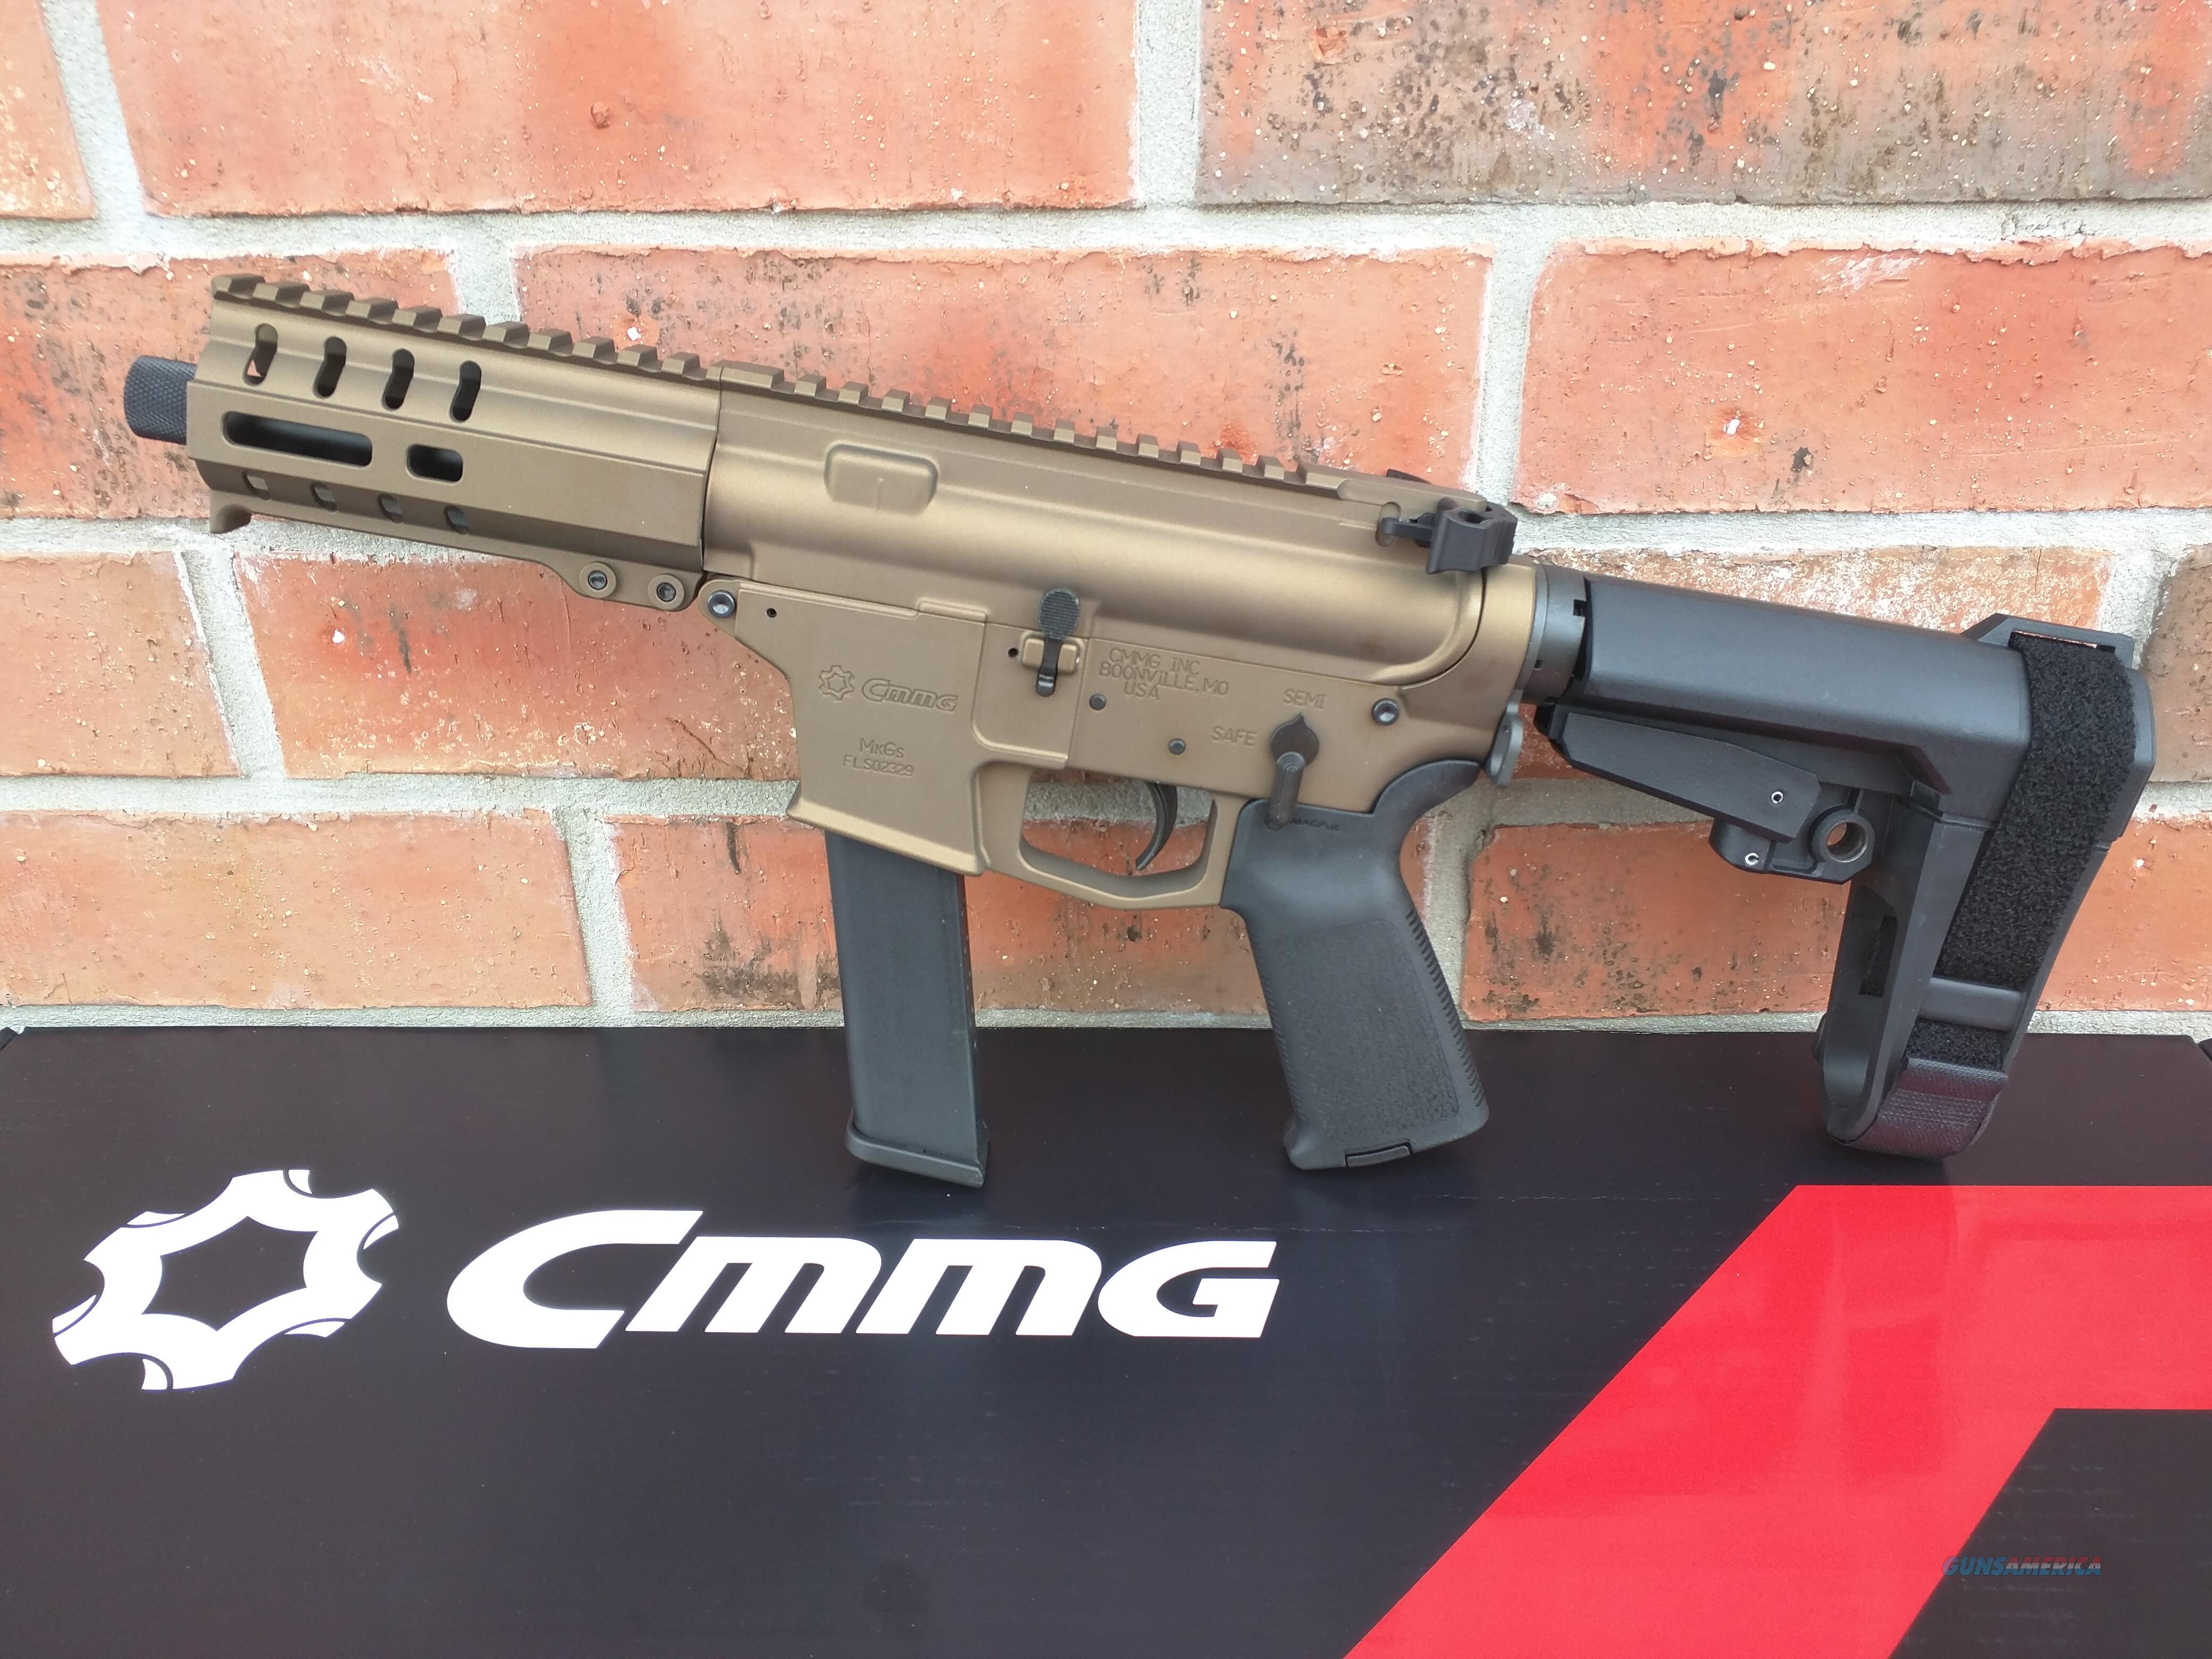 "CMMG Banshee AR 15 Pistol 40 S&W Burnt Bronze 5"" NEW MODEL!! with SBA3 Pistol Brace 22 Rd Magazine Takes Glock Mags RADIAL DELAYED BLOWBACK Billet Alum. NIB FREE LAYAWAY  Guns > Rifles > AR-15 Rifles - Small Manufacturers > Complete Rifle"